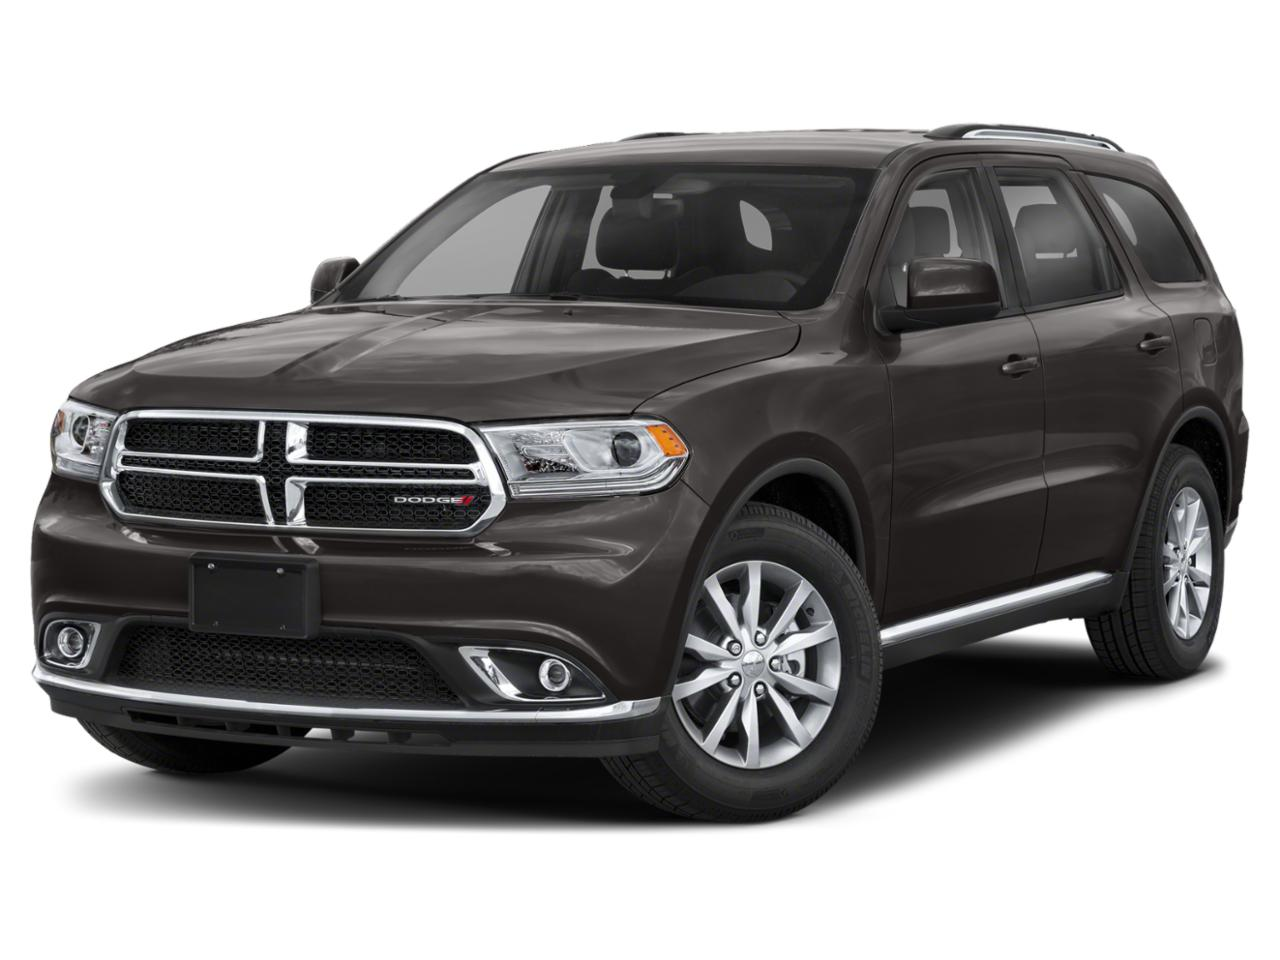 2018 Dodge Durango Vehicle Photo in Bowie, MD 20716